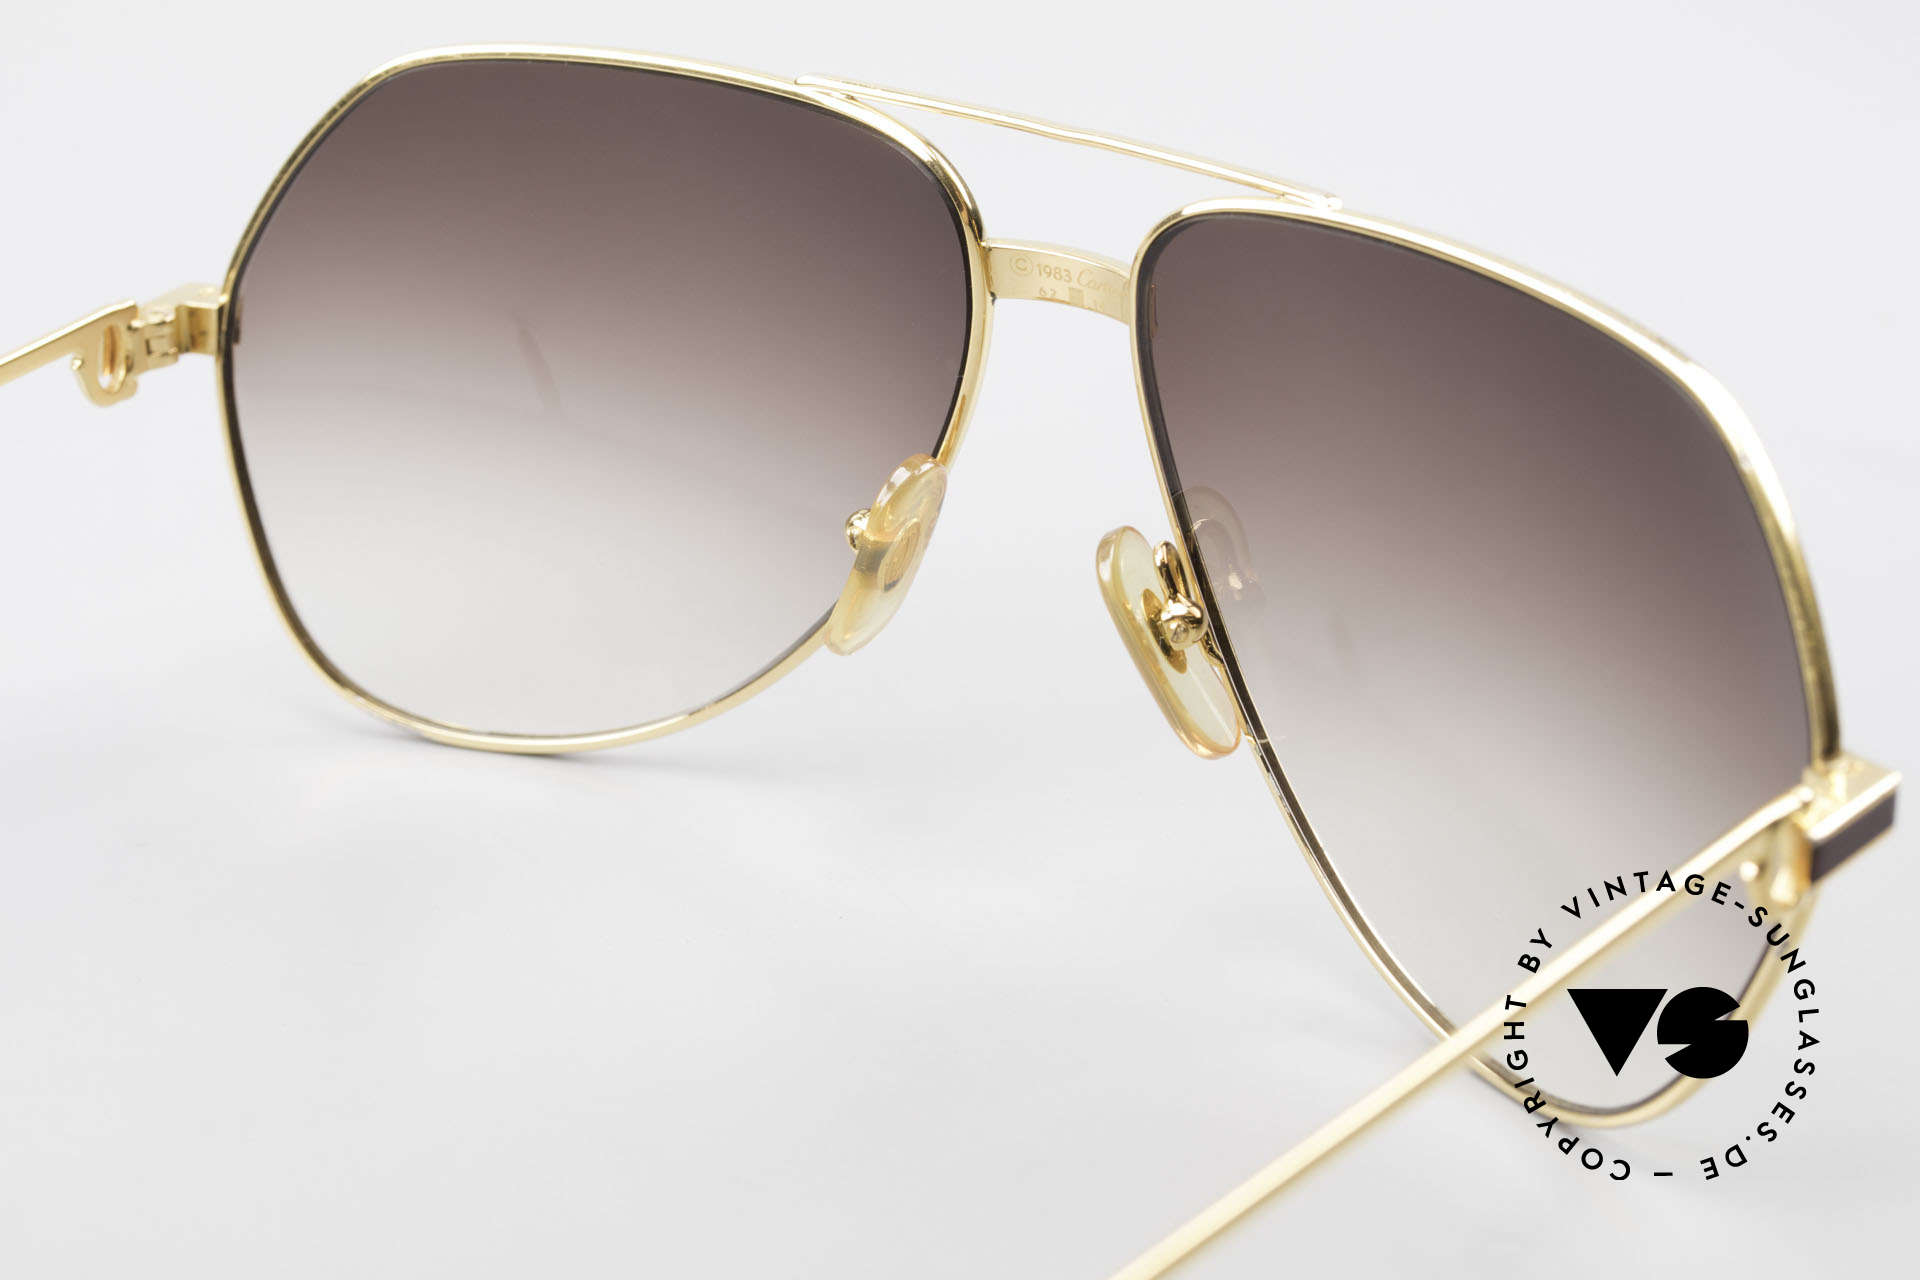 Cartier Vendome Laque - L Luxury Aviator Sunglasses, NO retro sunglasses, but an authentic vintage ORIGINAL, Made for Men